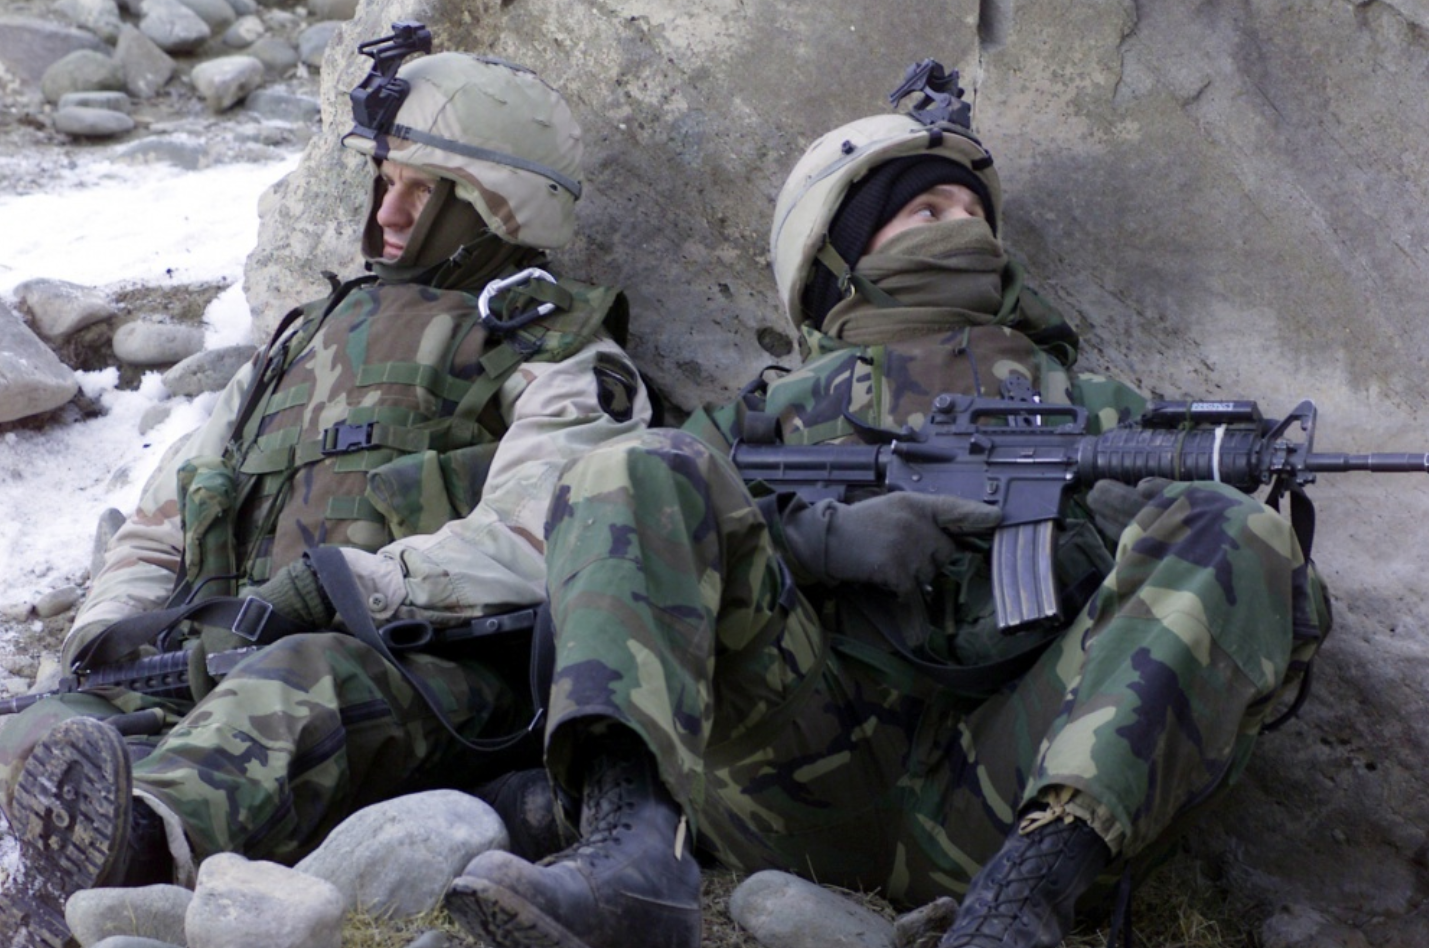 75th Regiment Army Rangers defend against the Taliban during Operation Anaconda in Afghanistan